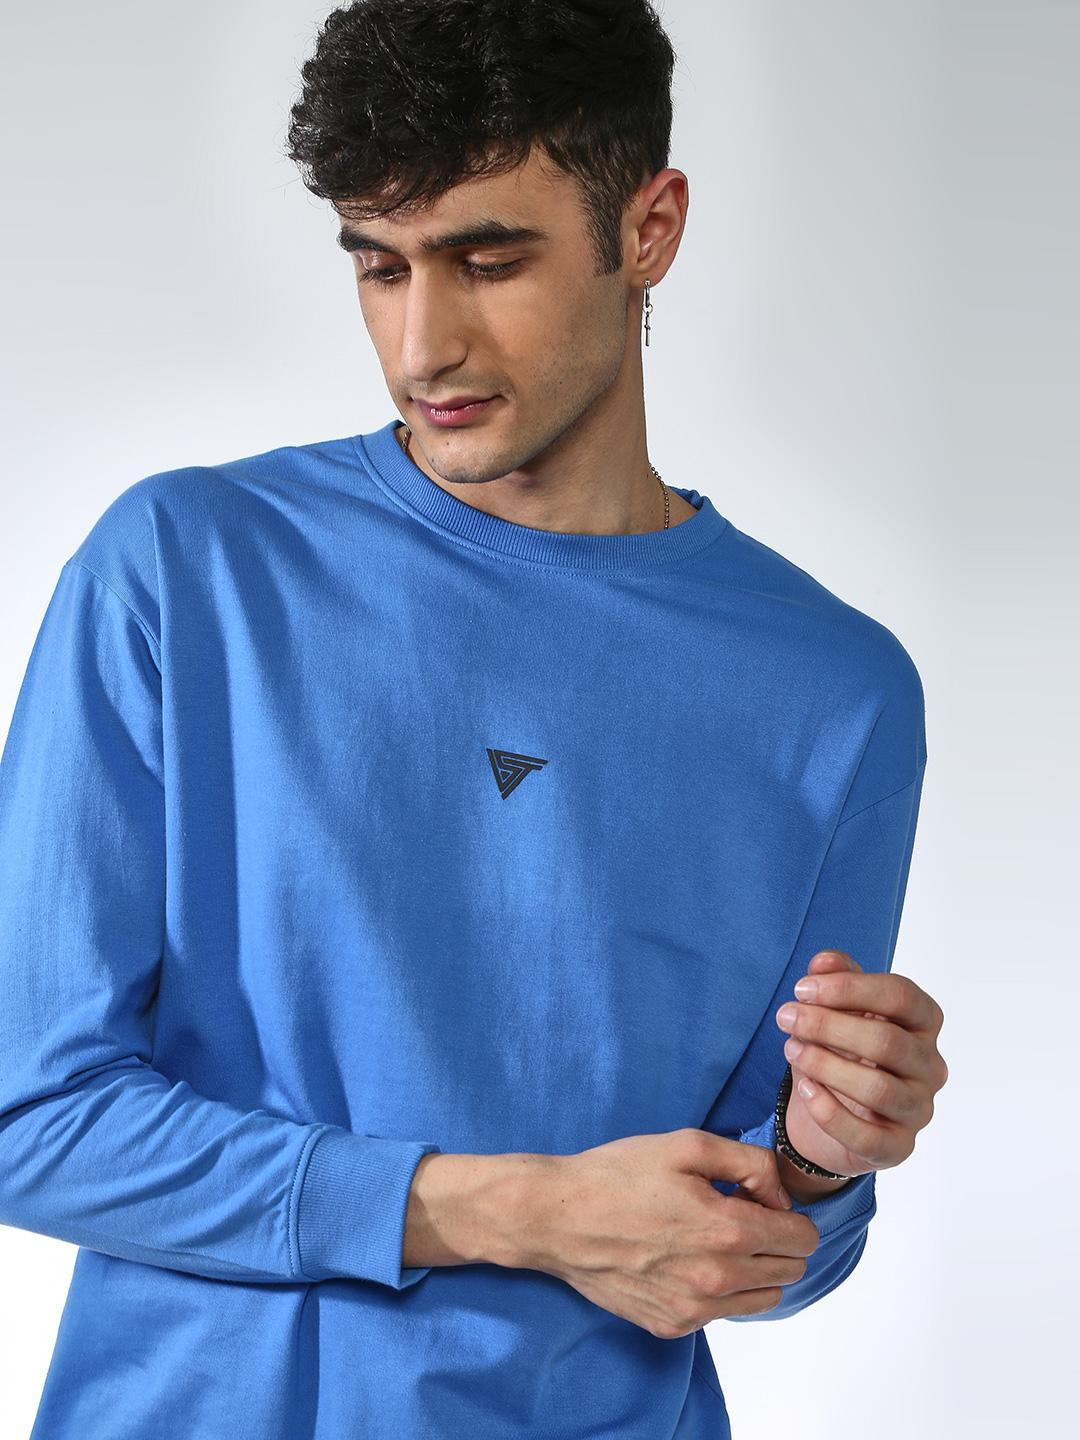 Blue Saint Blue Basic Round Neck Sweatshirt 1